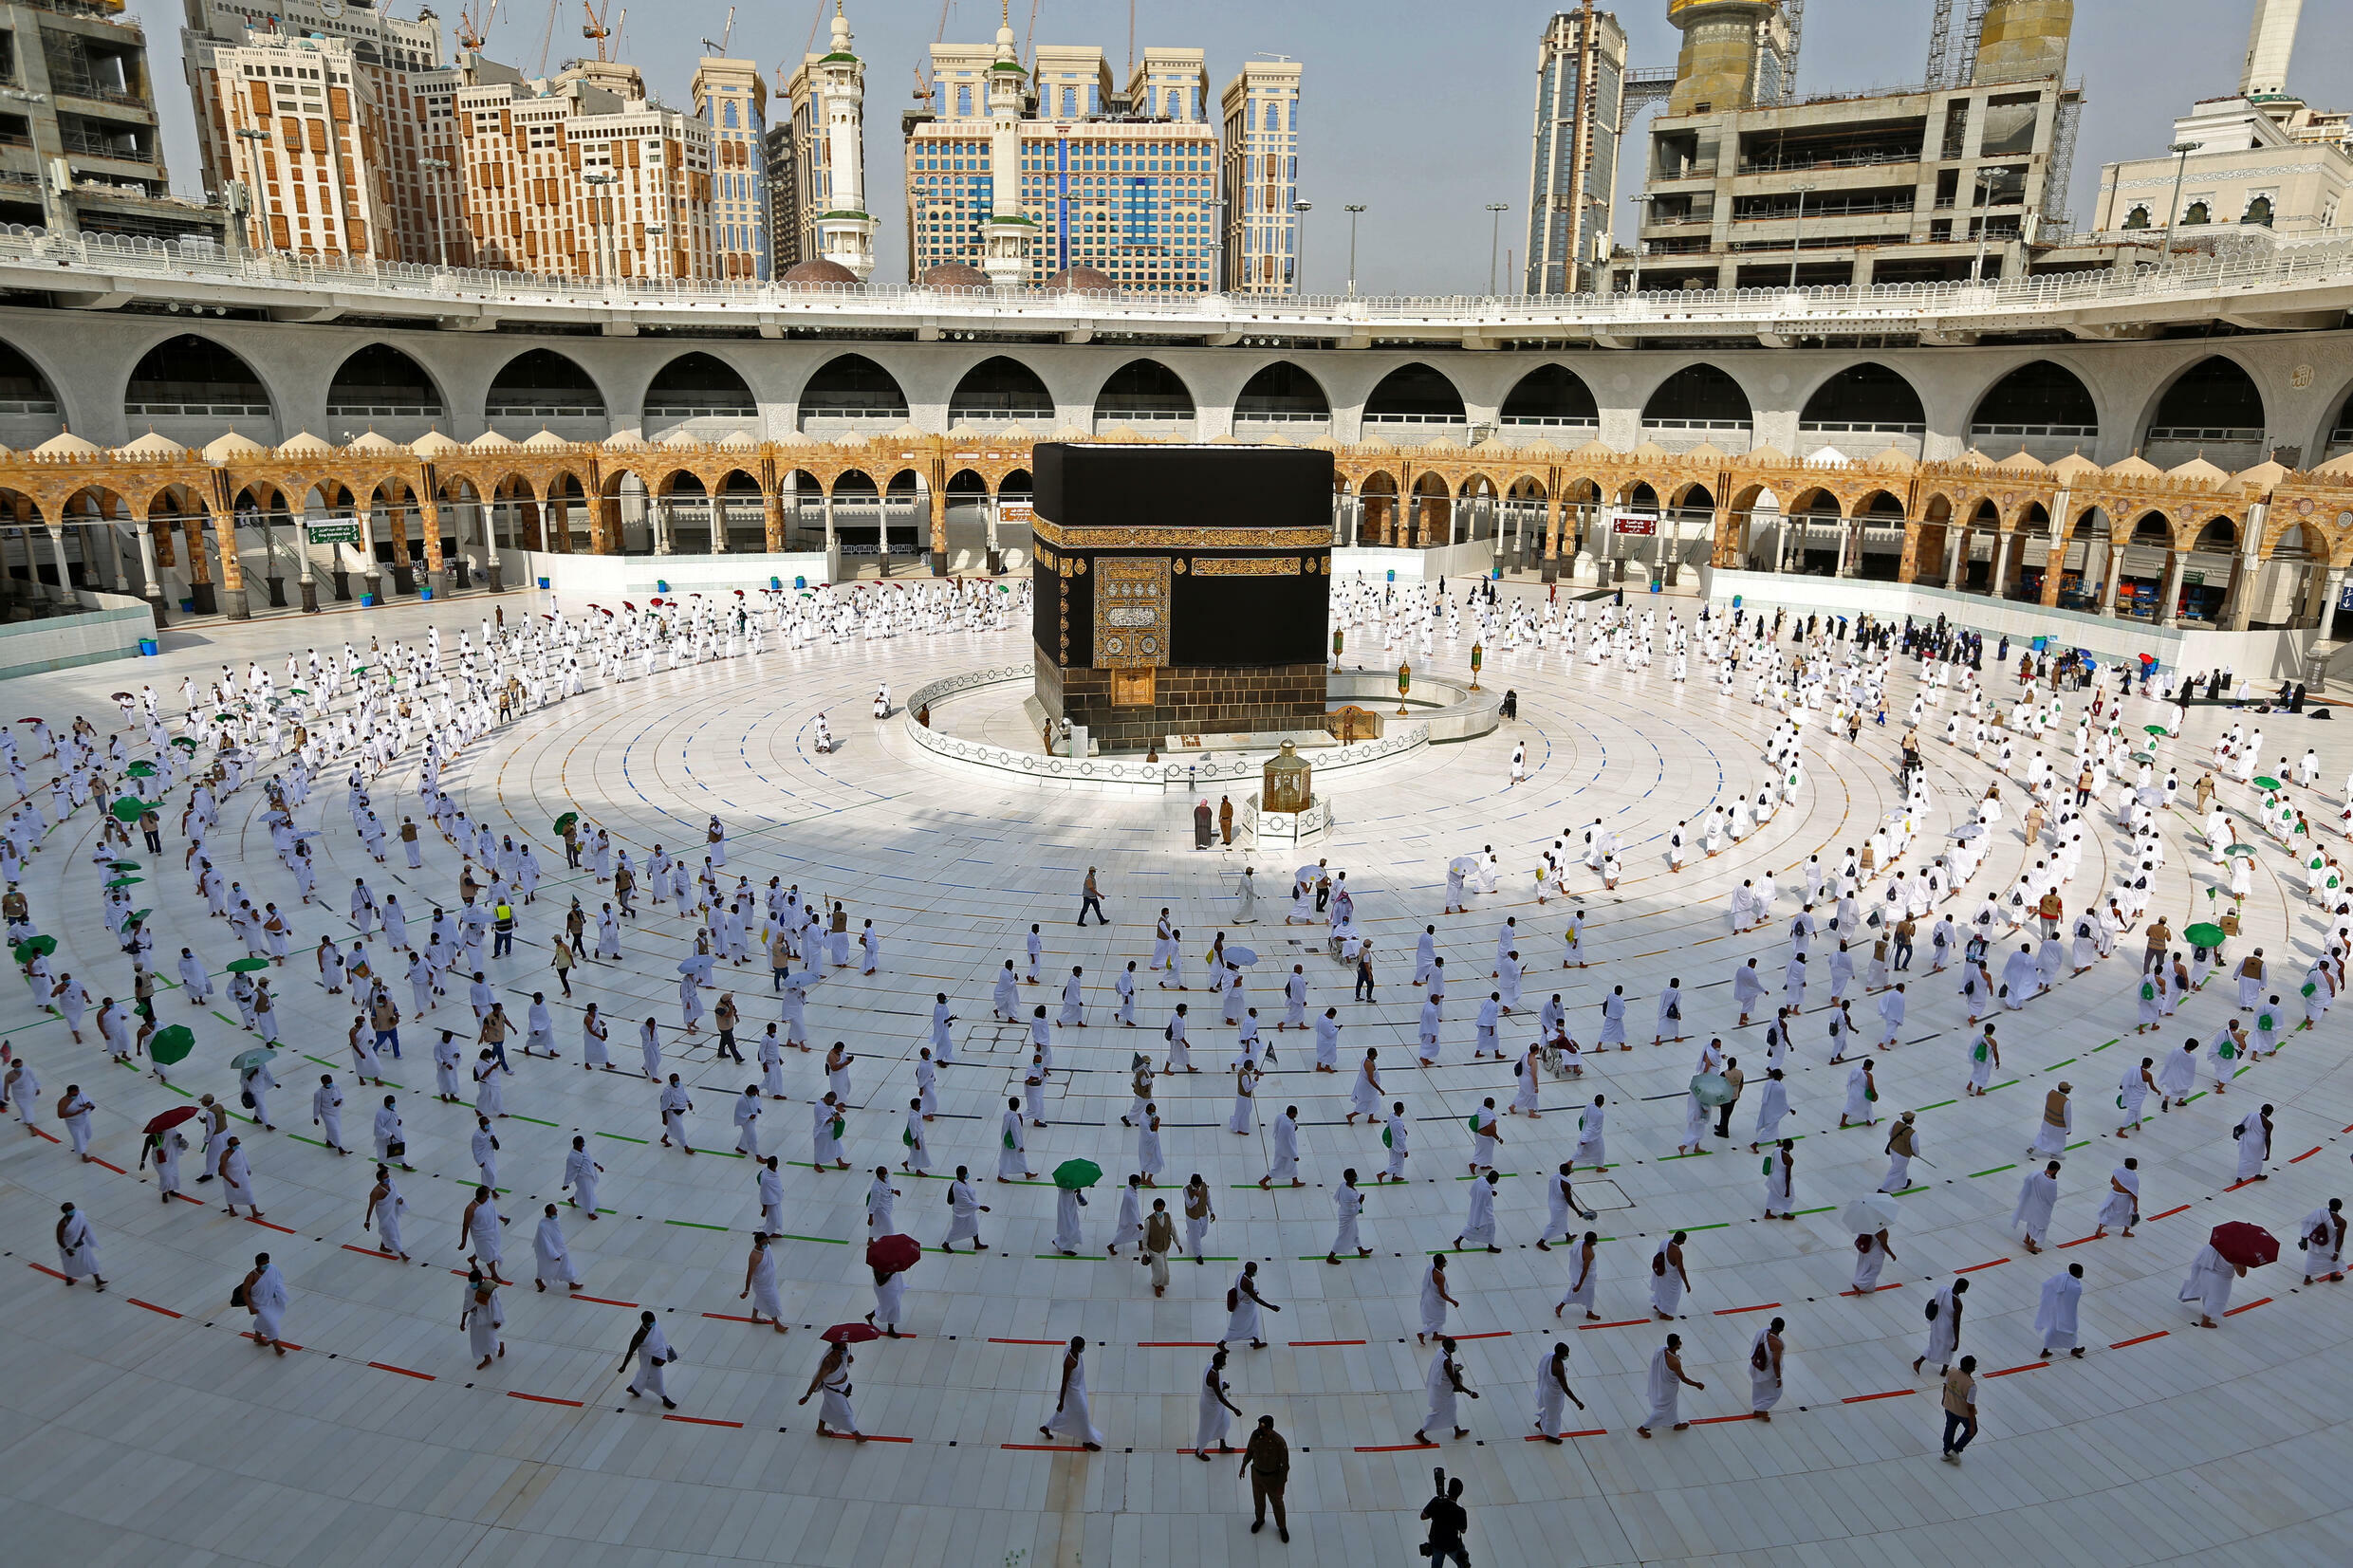 Distanced pilgrims: for the second year running, the hajj pilgrimage has been dramatically downscaled from normal times